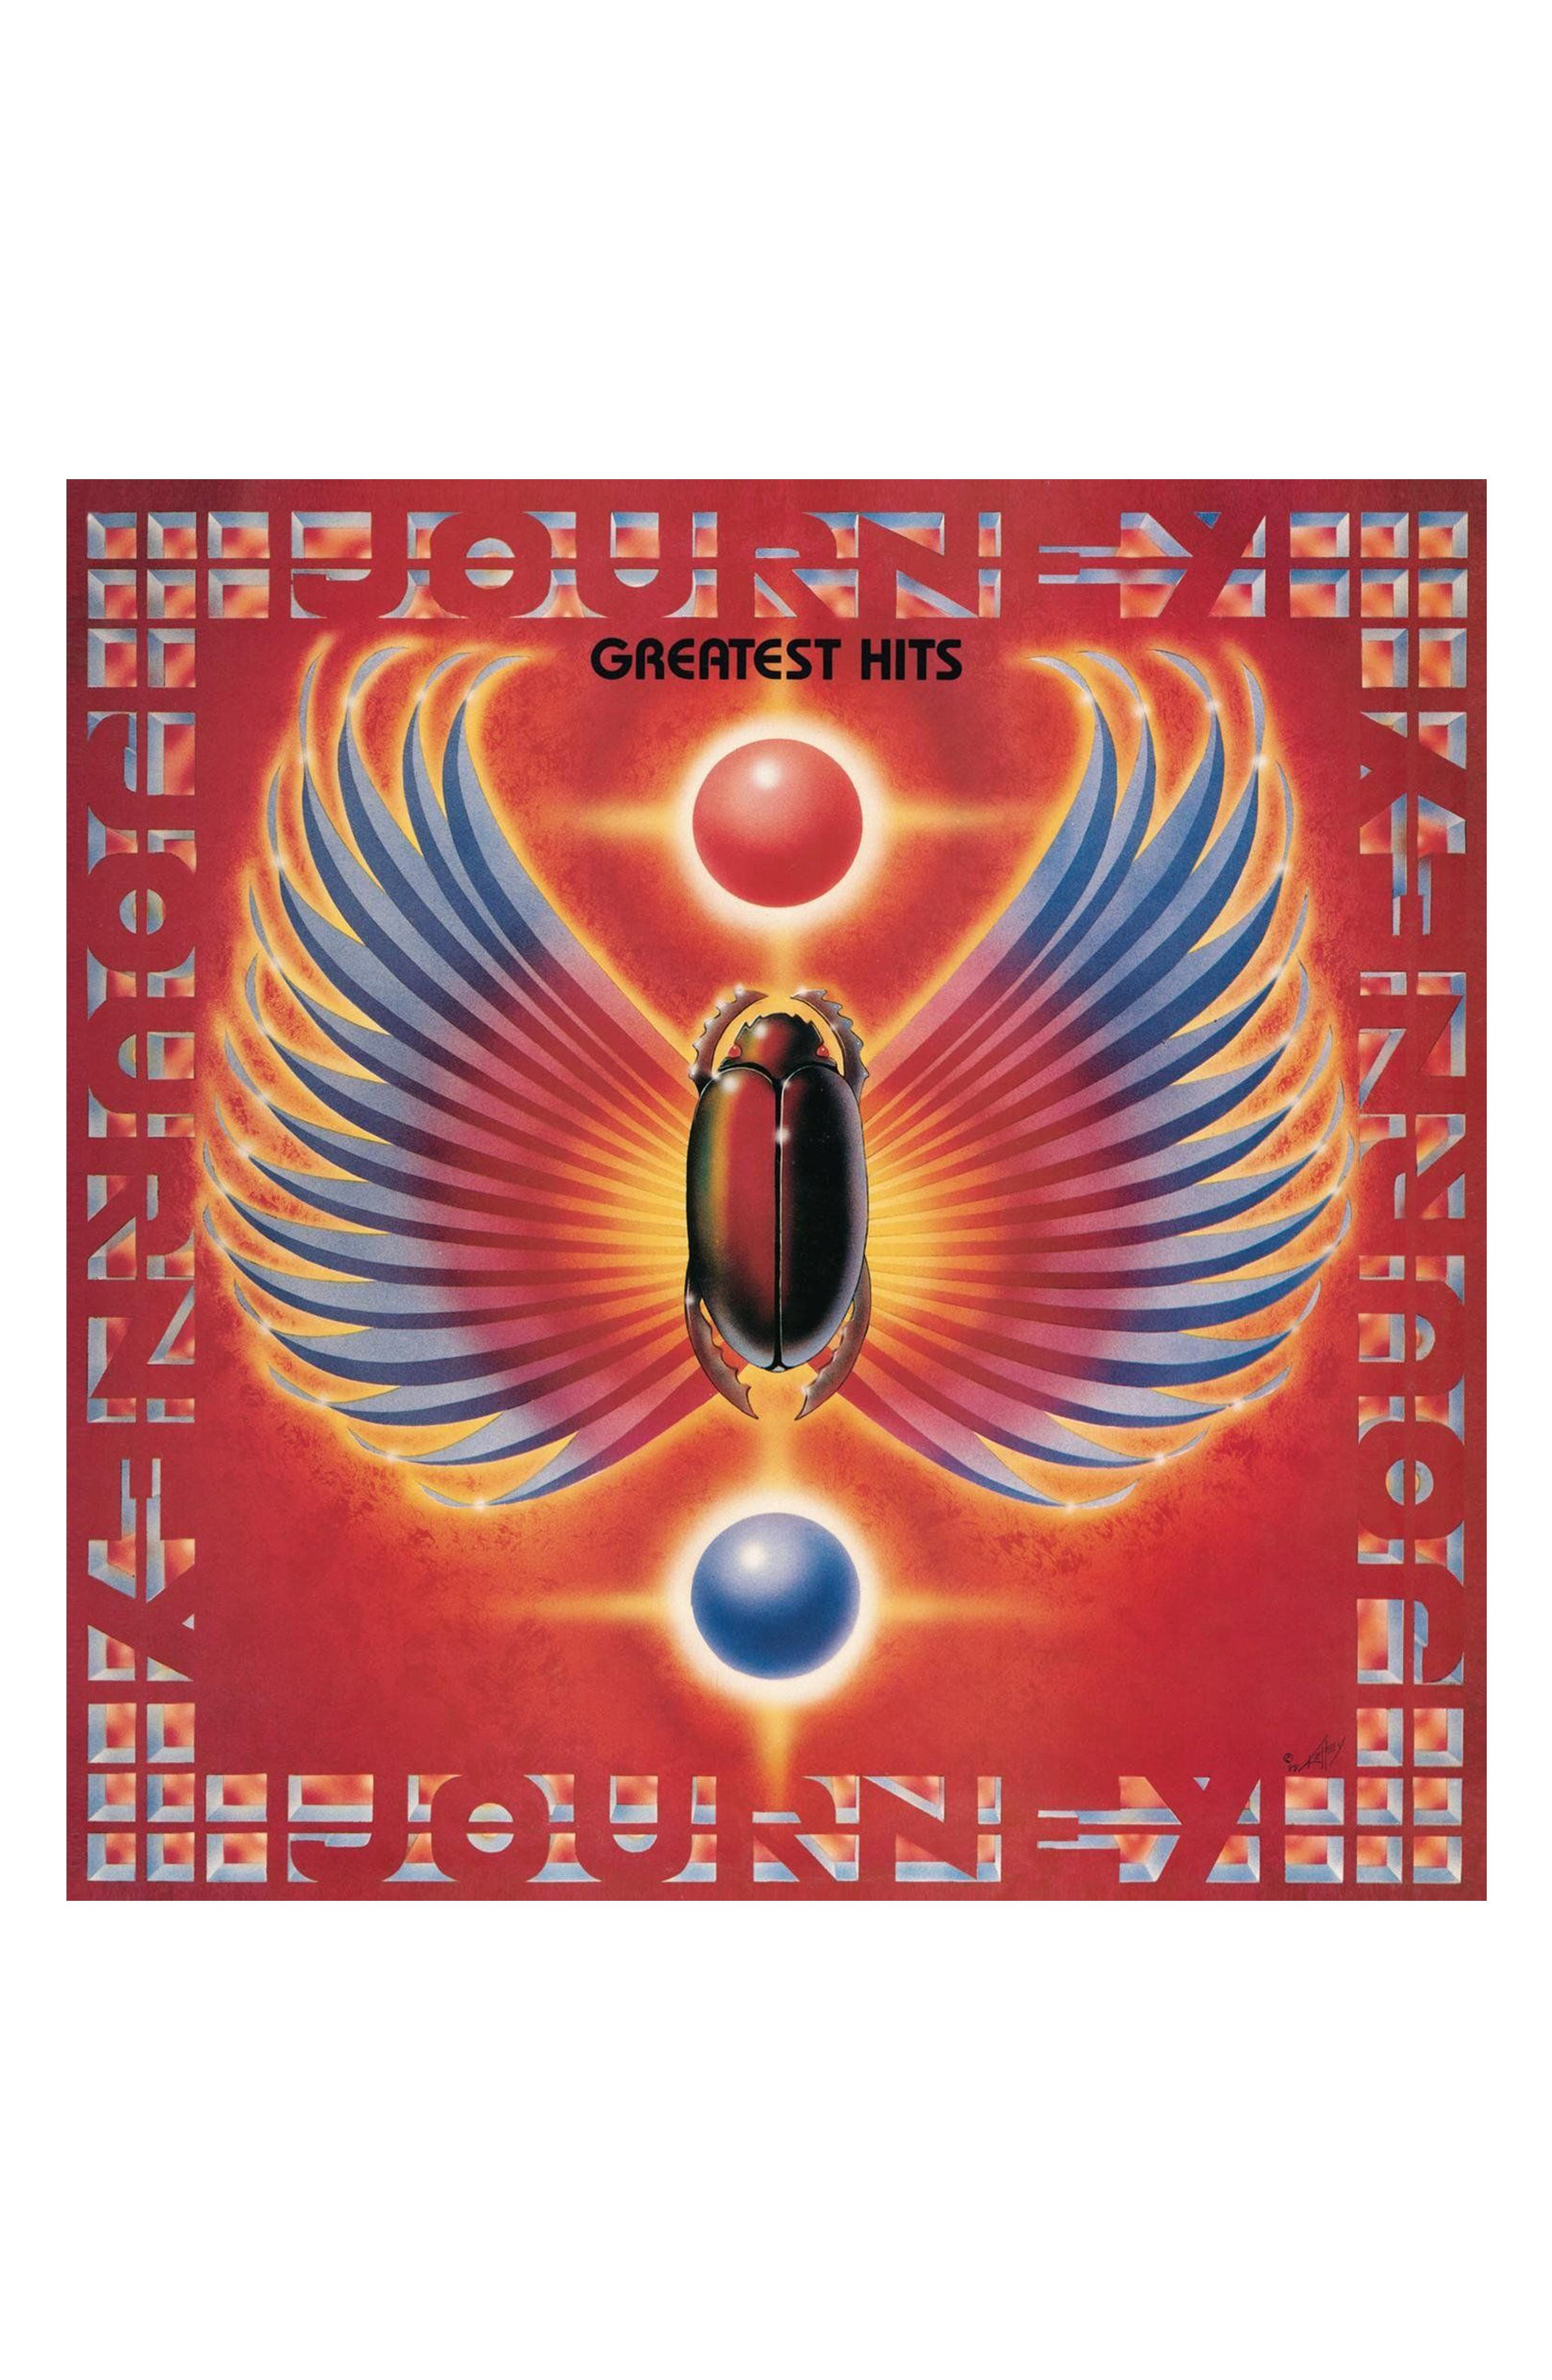 Journey Greatest Hits Limited Edition 2011 Reissue LP Vinyl Record